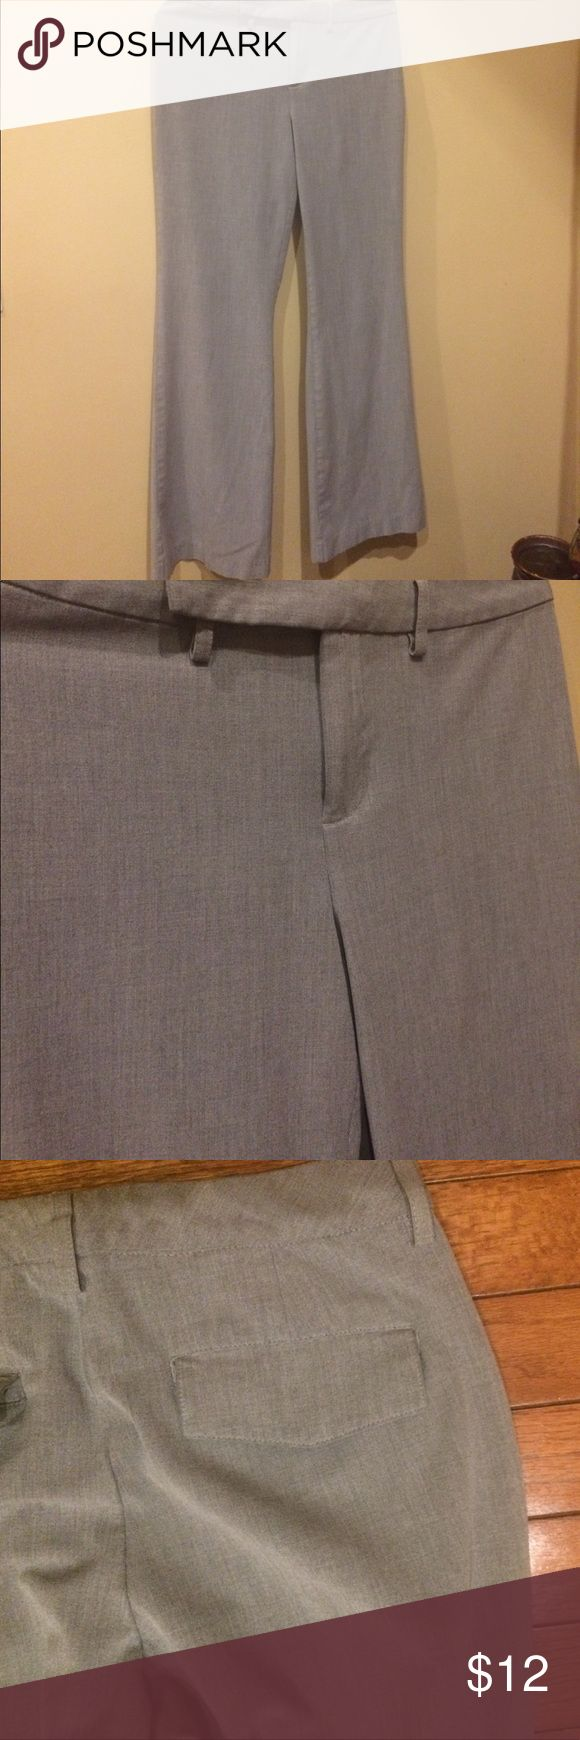 Old Navy stretch women's slacks pants gray size 4 Size 4. Dress pants. Excellent condition. Stretch material for comfort. Pants Trousers